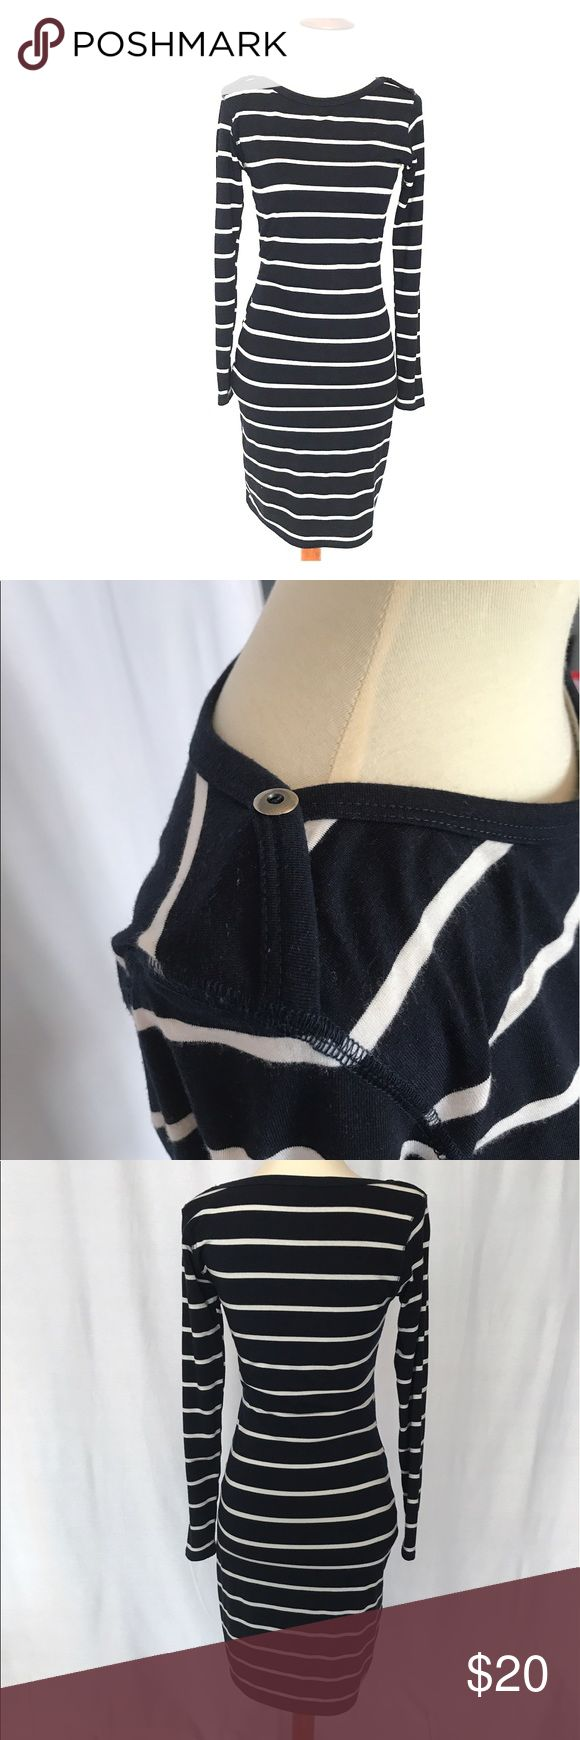 Navy Striped Nautical dress Loveapella navy with white stripes form fitting knee length dress. 79%polyester 16%rayon 5%spandex . Great classic preppy style. Loveappella Dresses Long Sleeve